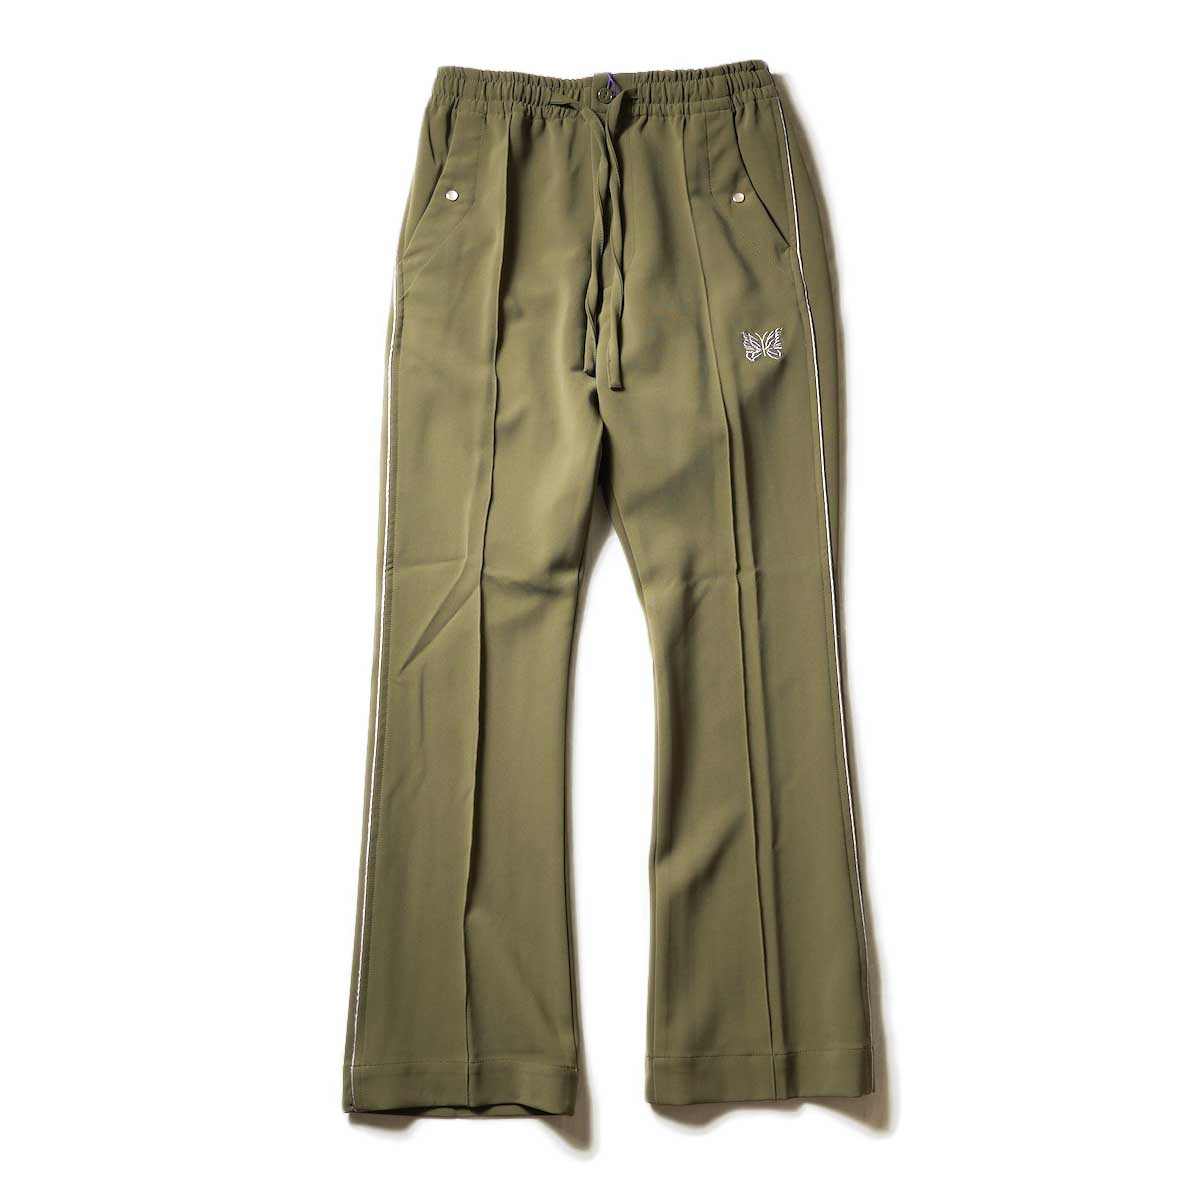 Needles / Piping Cowboy Pants - Pe/Pu Double Cloth (Olive)